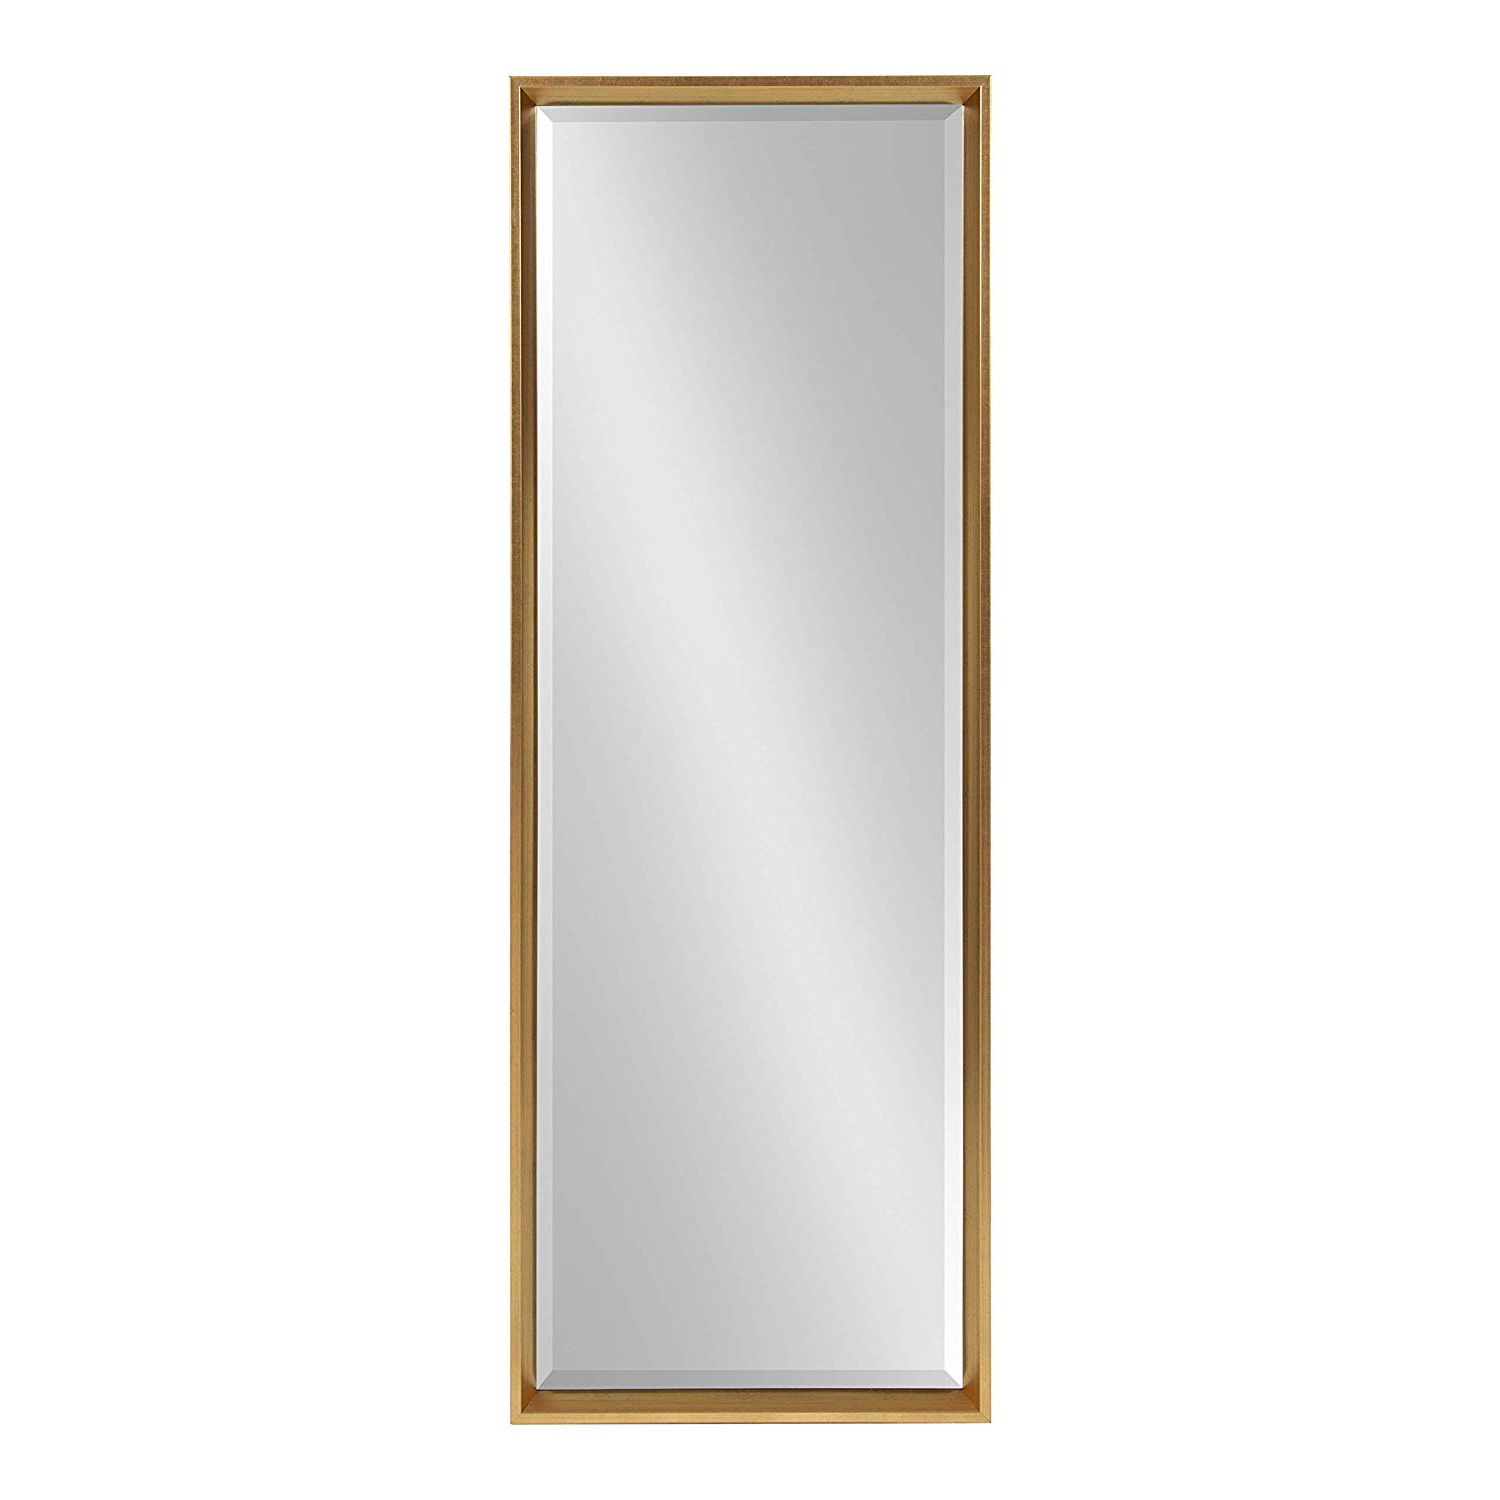 Kate And Laurel Calter Modern Framed Full Length Beveled Wall Mirror,  17.5X (View 5 of 20)